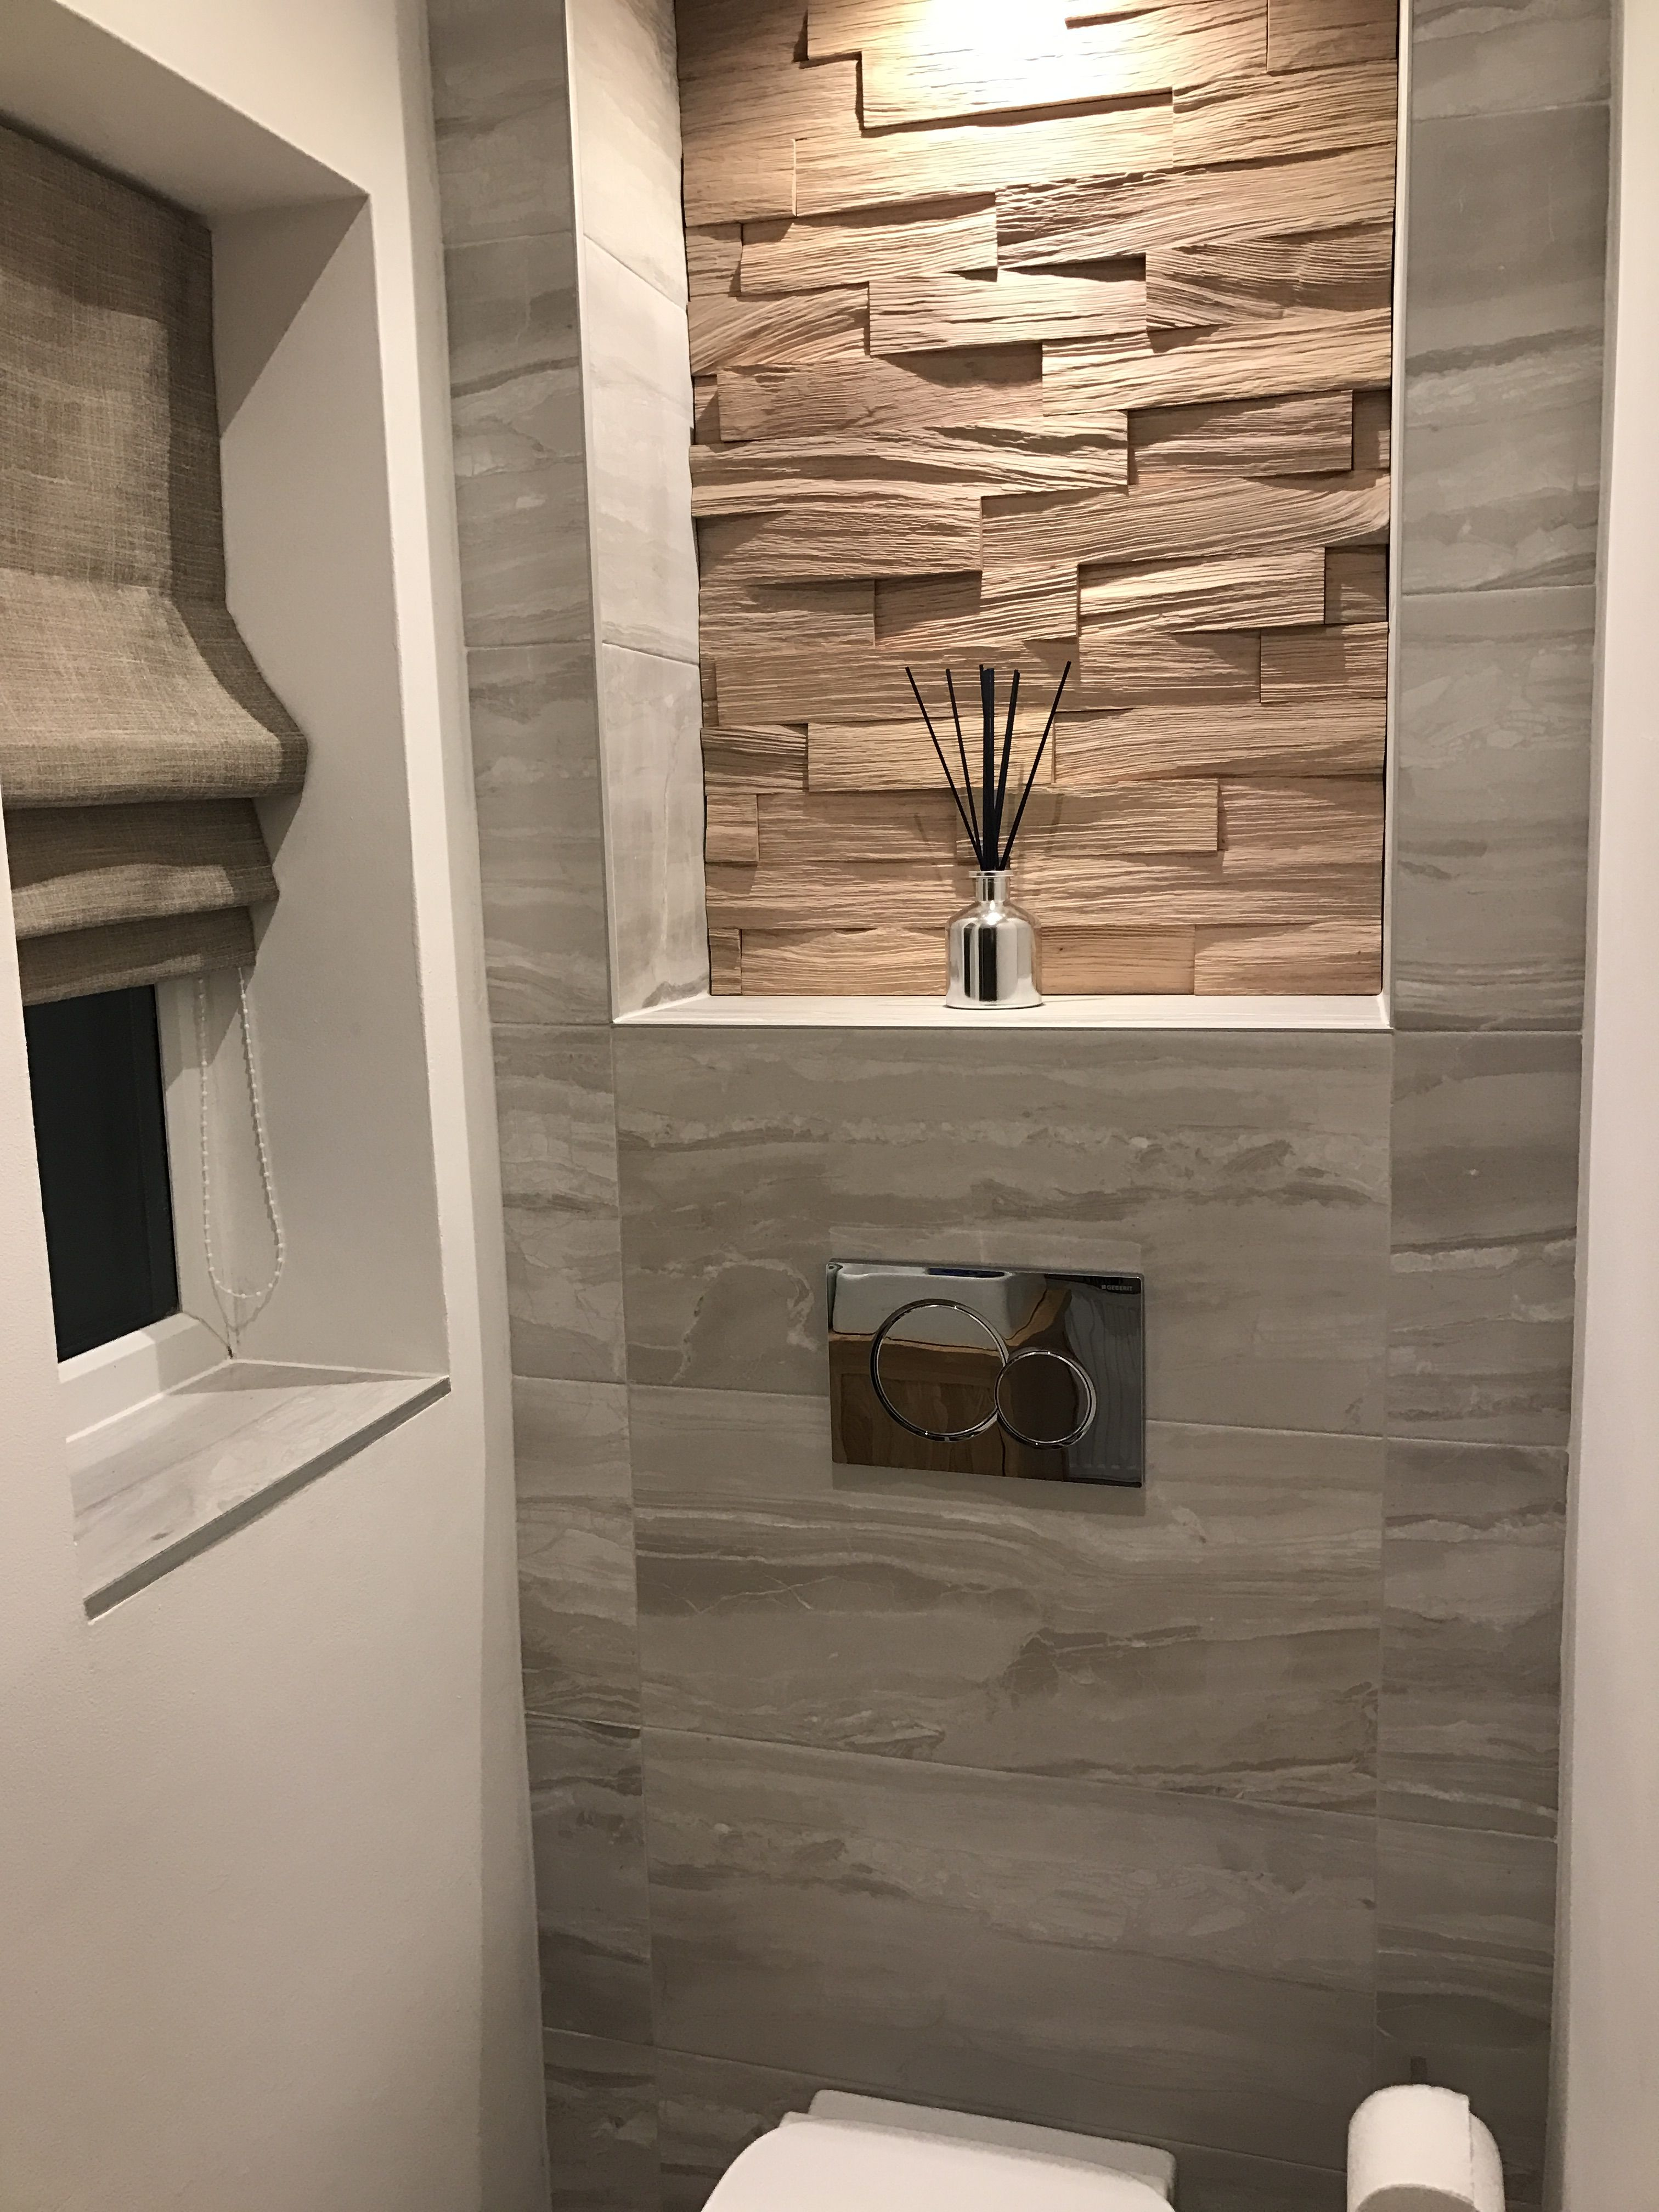 Porcelanosa Wood Wall Pure Tiles Mixed With B Q Tiles Modern Bathroom Design Small Bathroom Inspiration Bathroom Design Luxury